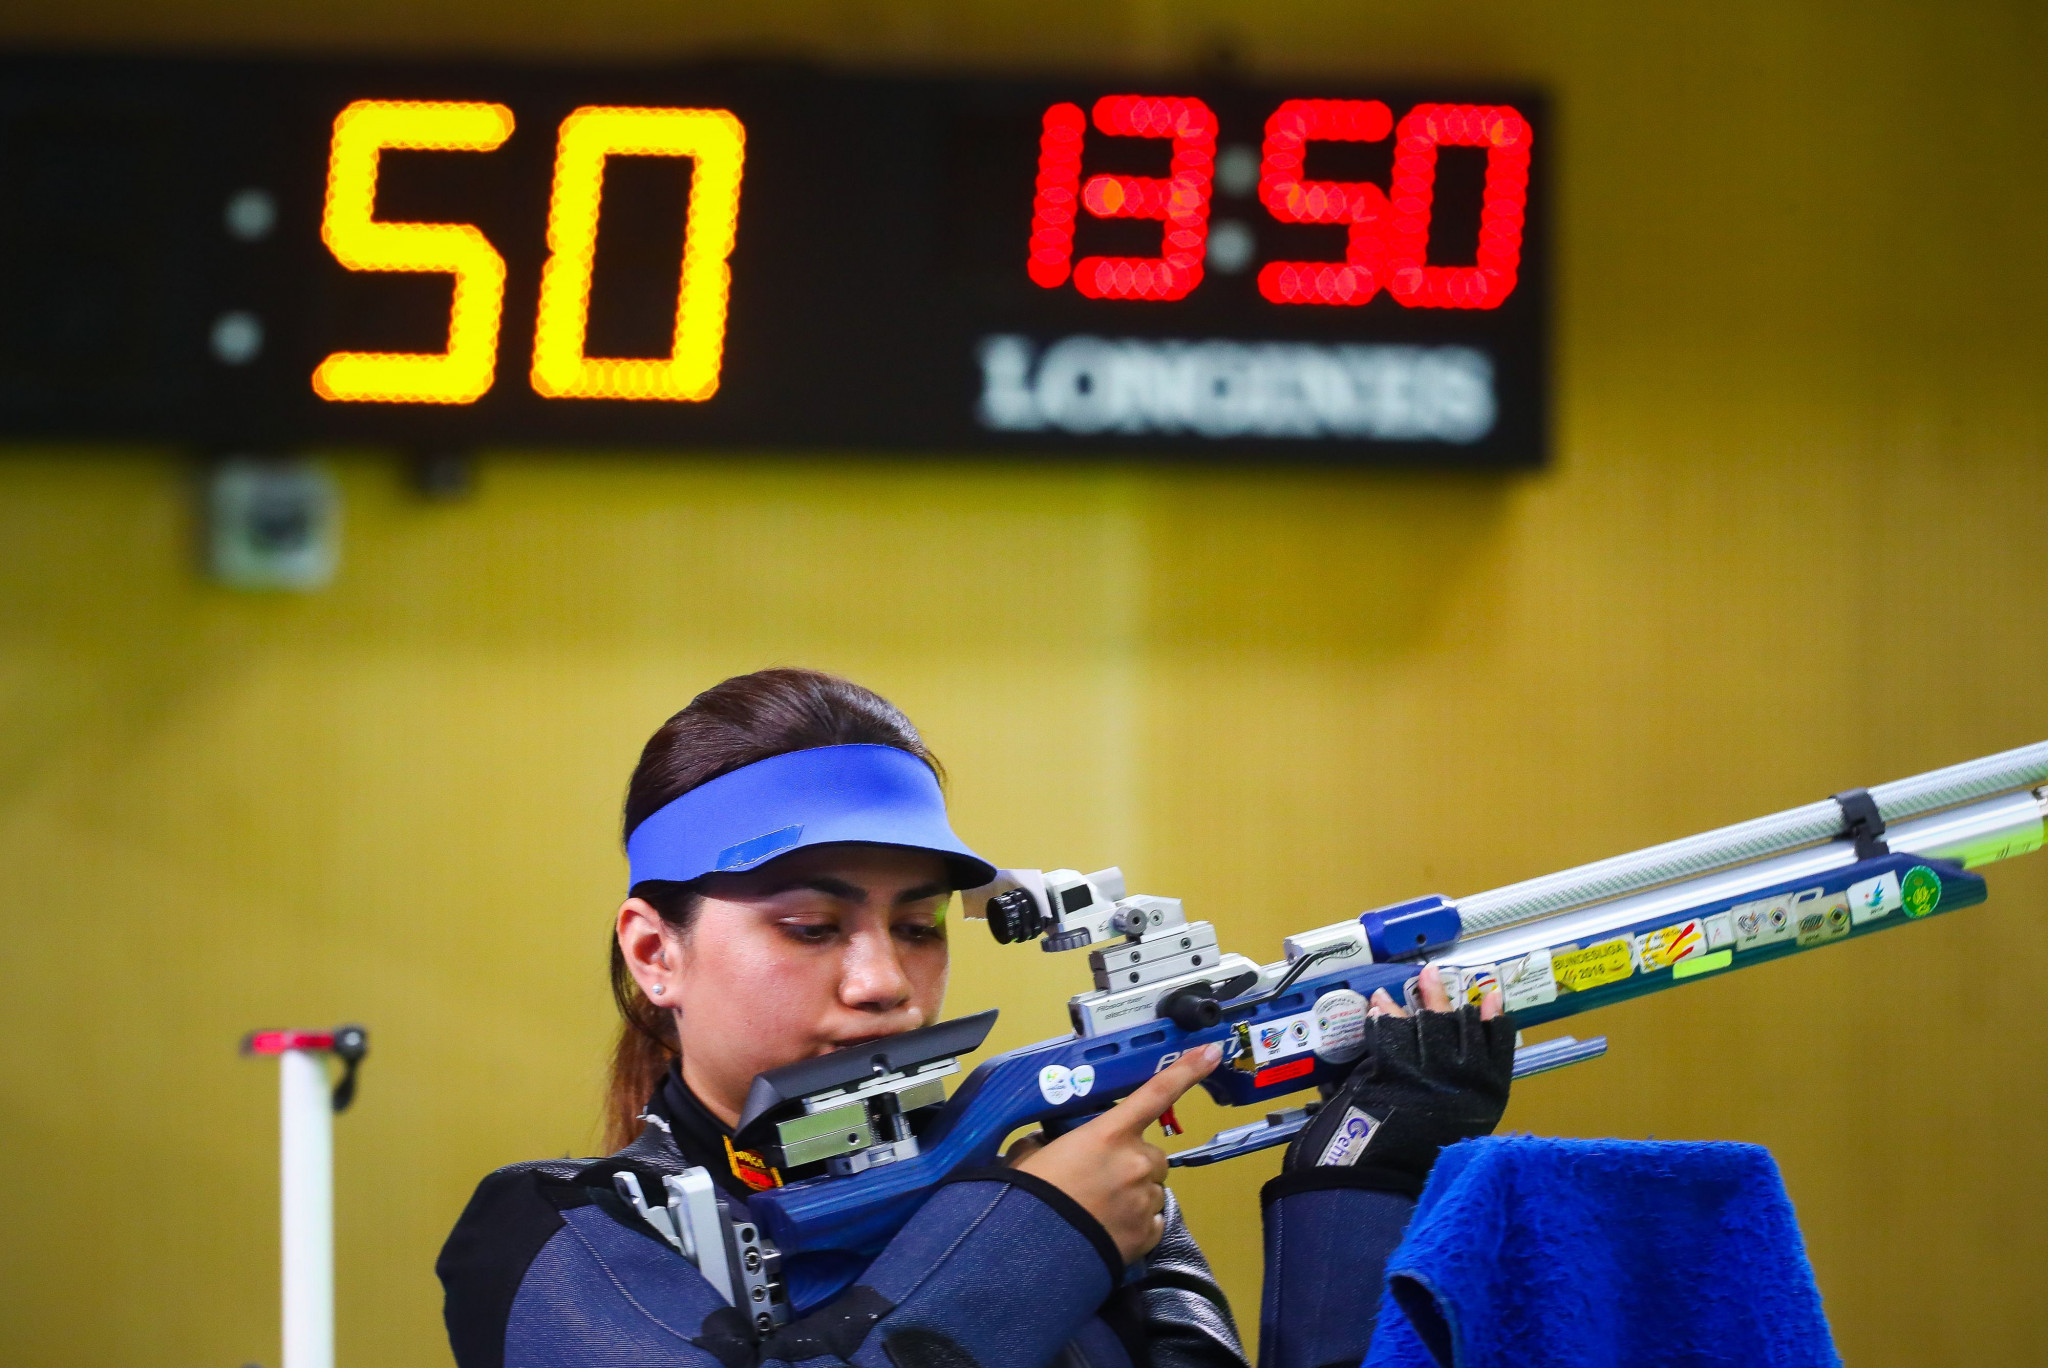 Chandela wins 10m air rifle at ISSF Rifle and Pistol World Cup in Munich